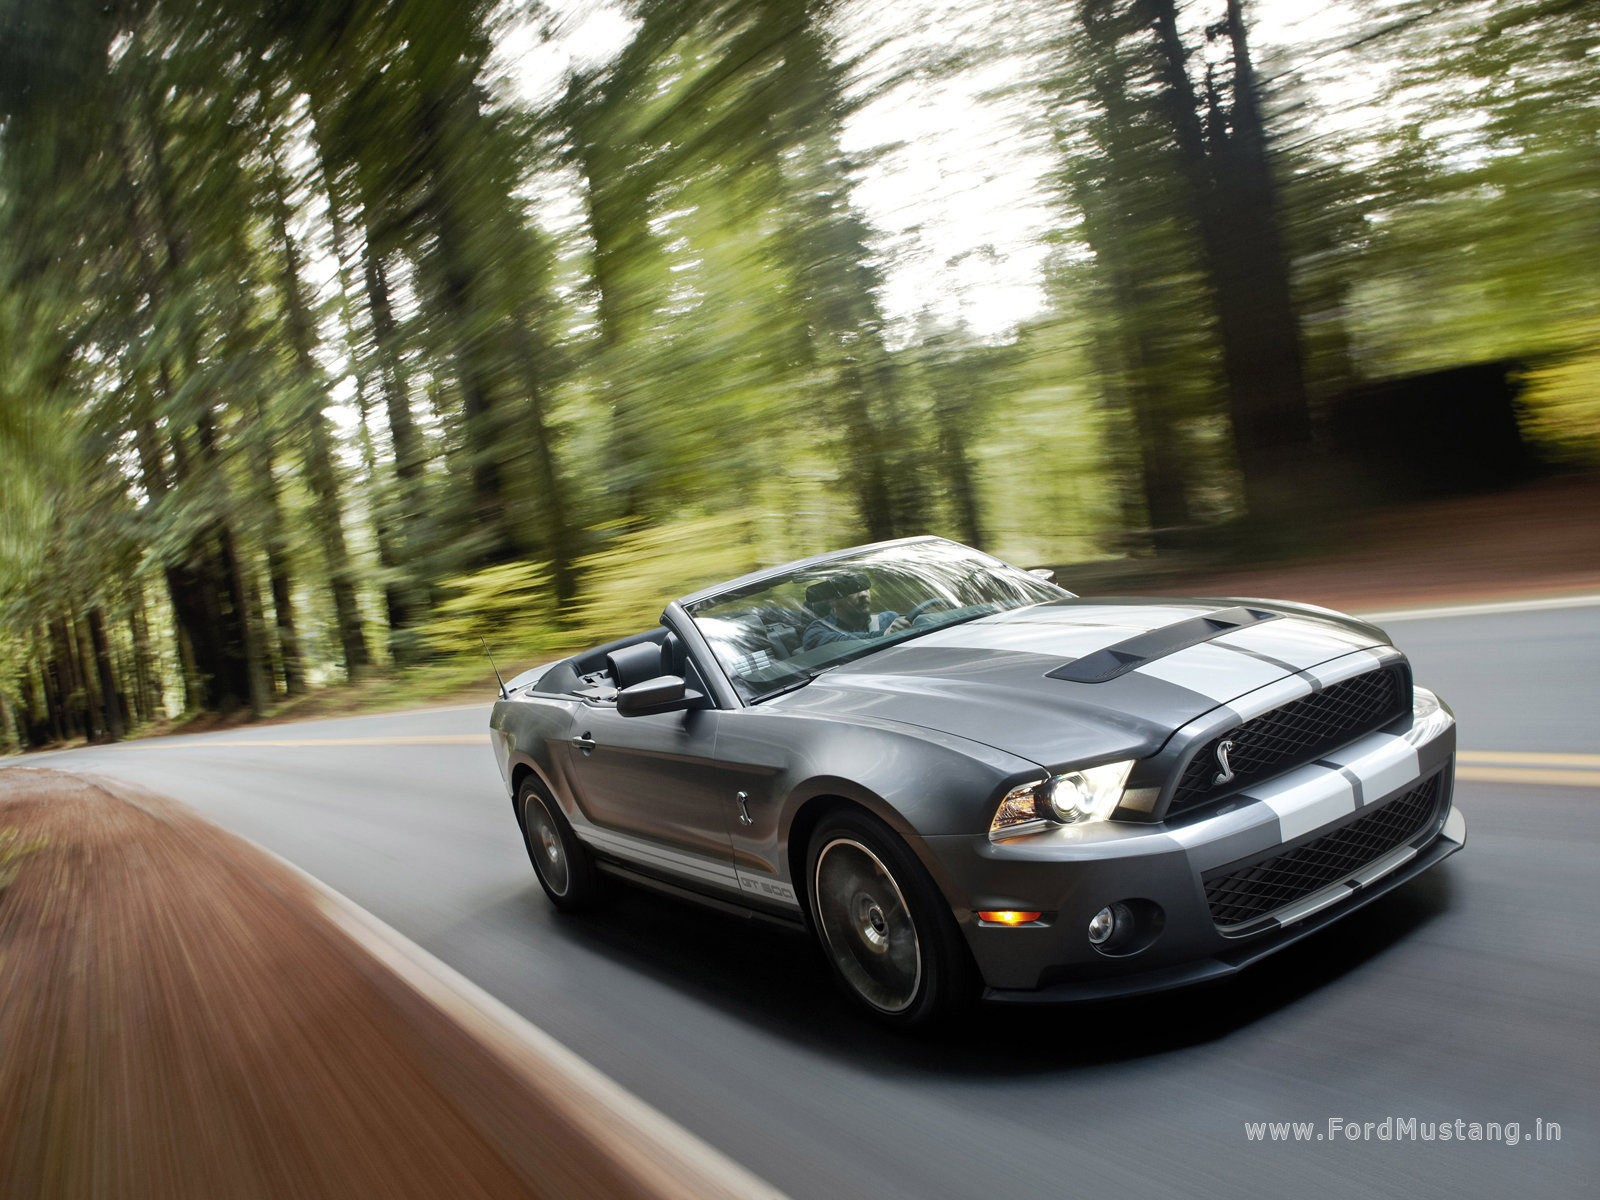 Ford Mustang Shelby Gt500 Convertible 2010 Wallpapers Ford